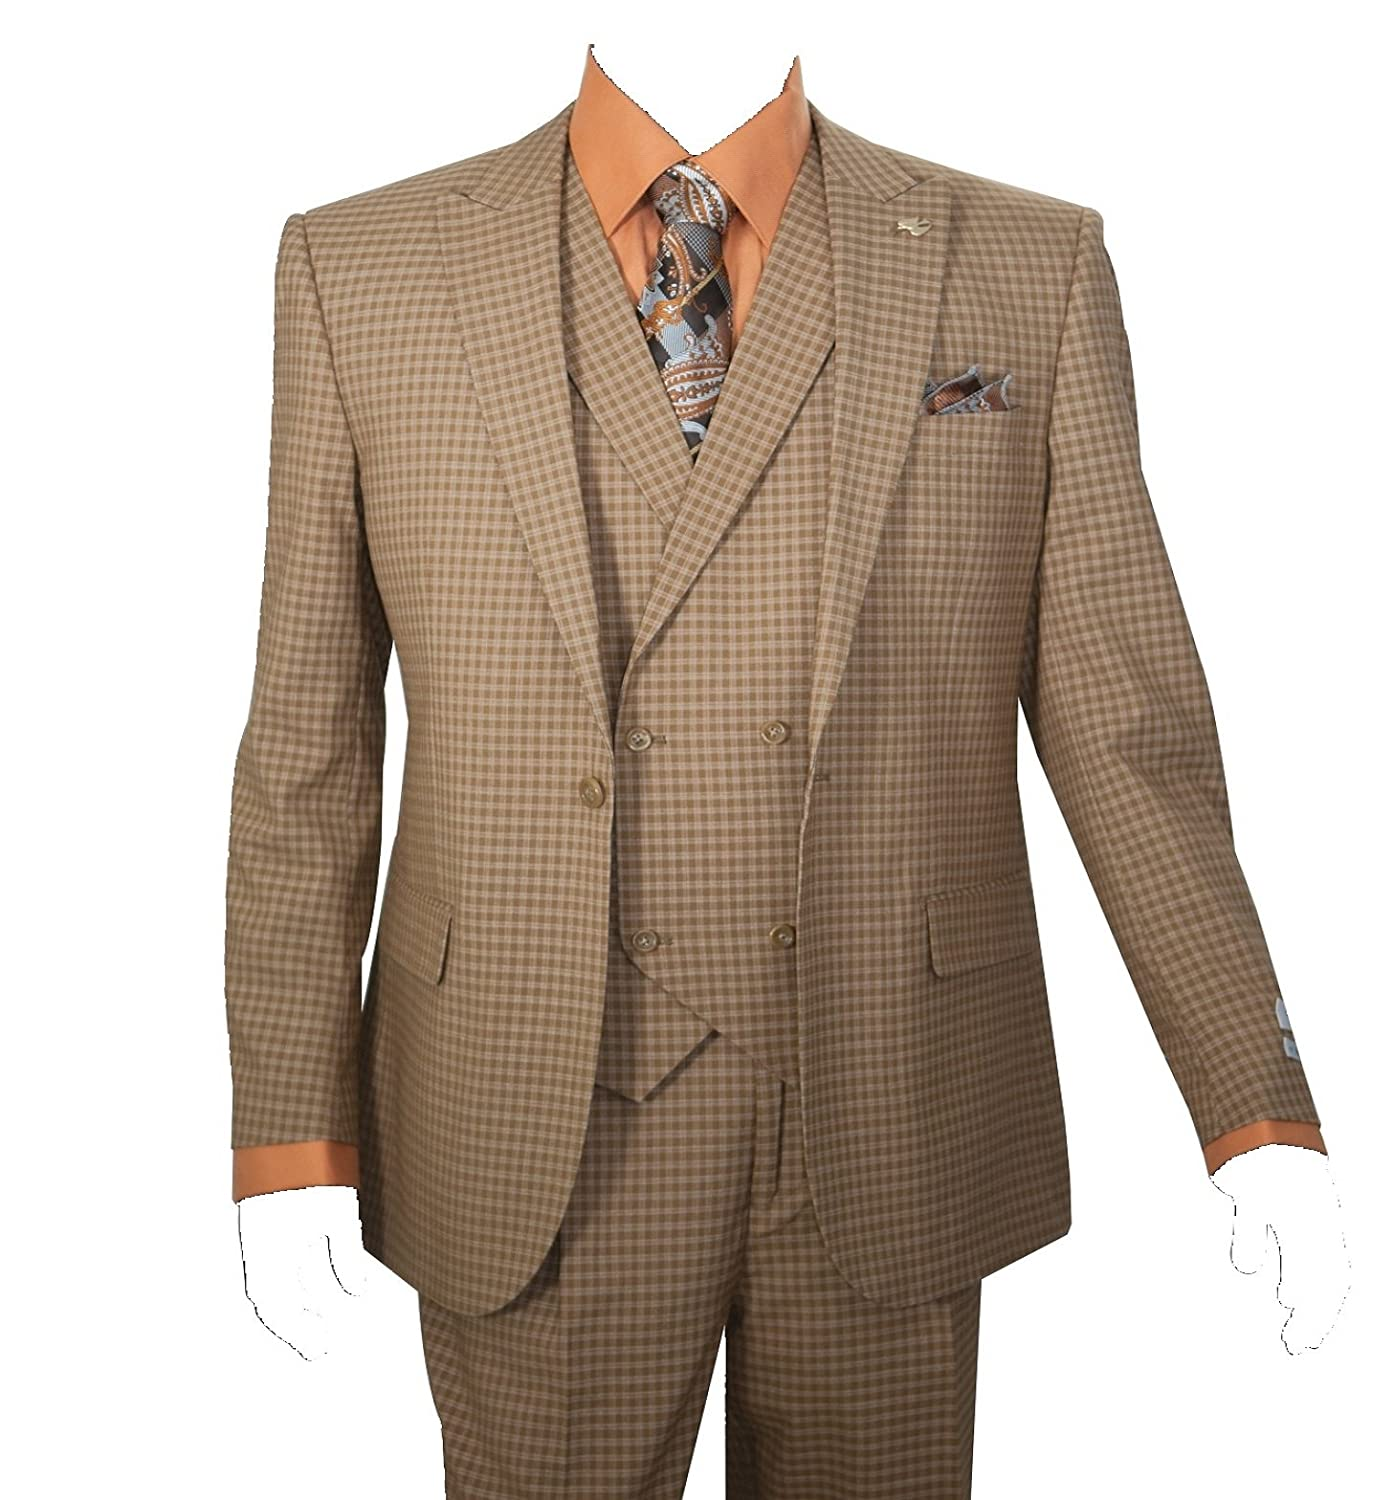 Men's Vintage Style Suits, Classic Suits Mens 3 Piece Single Button Mini-Plaid Pattern Suit (Taupe) $149.99 AT vintagedancer.com